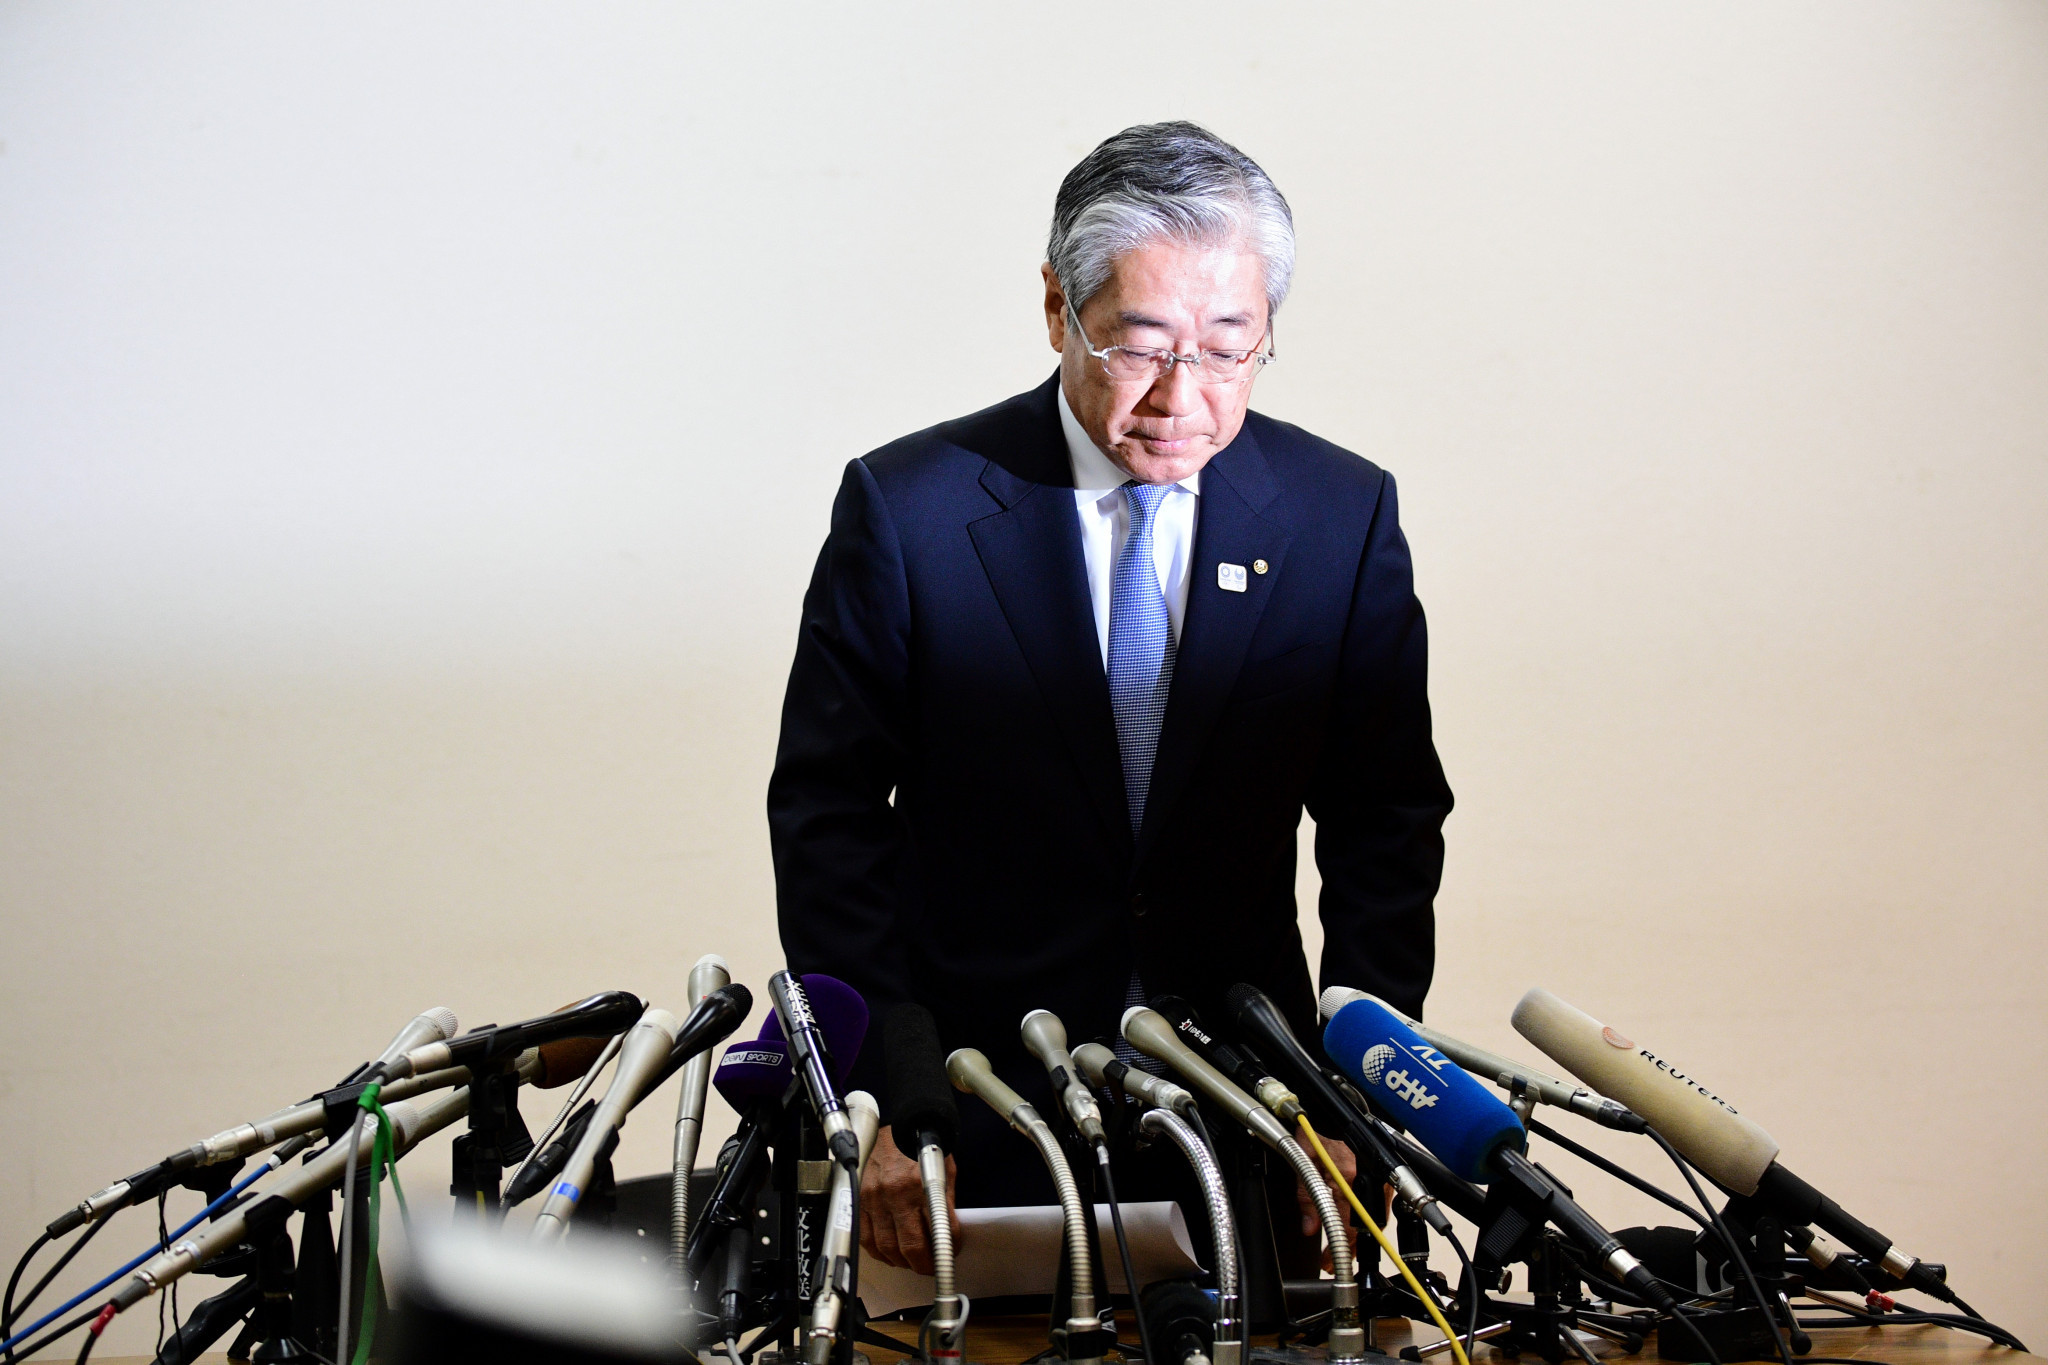 Tsunekazu Takeda should not need to step down as Japanese Olympic Committee President or IOC member while he is being investigated for corruption allegations, claims Tokyo 2020 chief executive Toshirō Mutō ©Getty Images